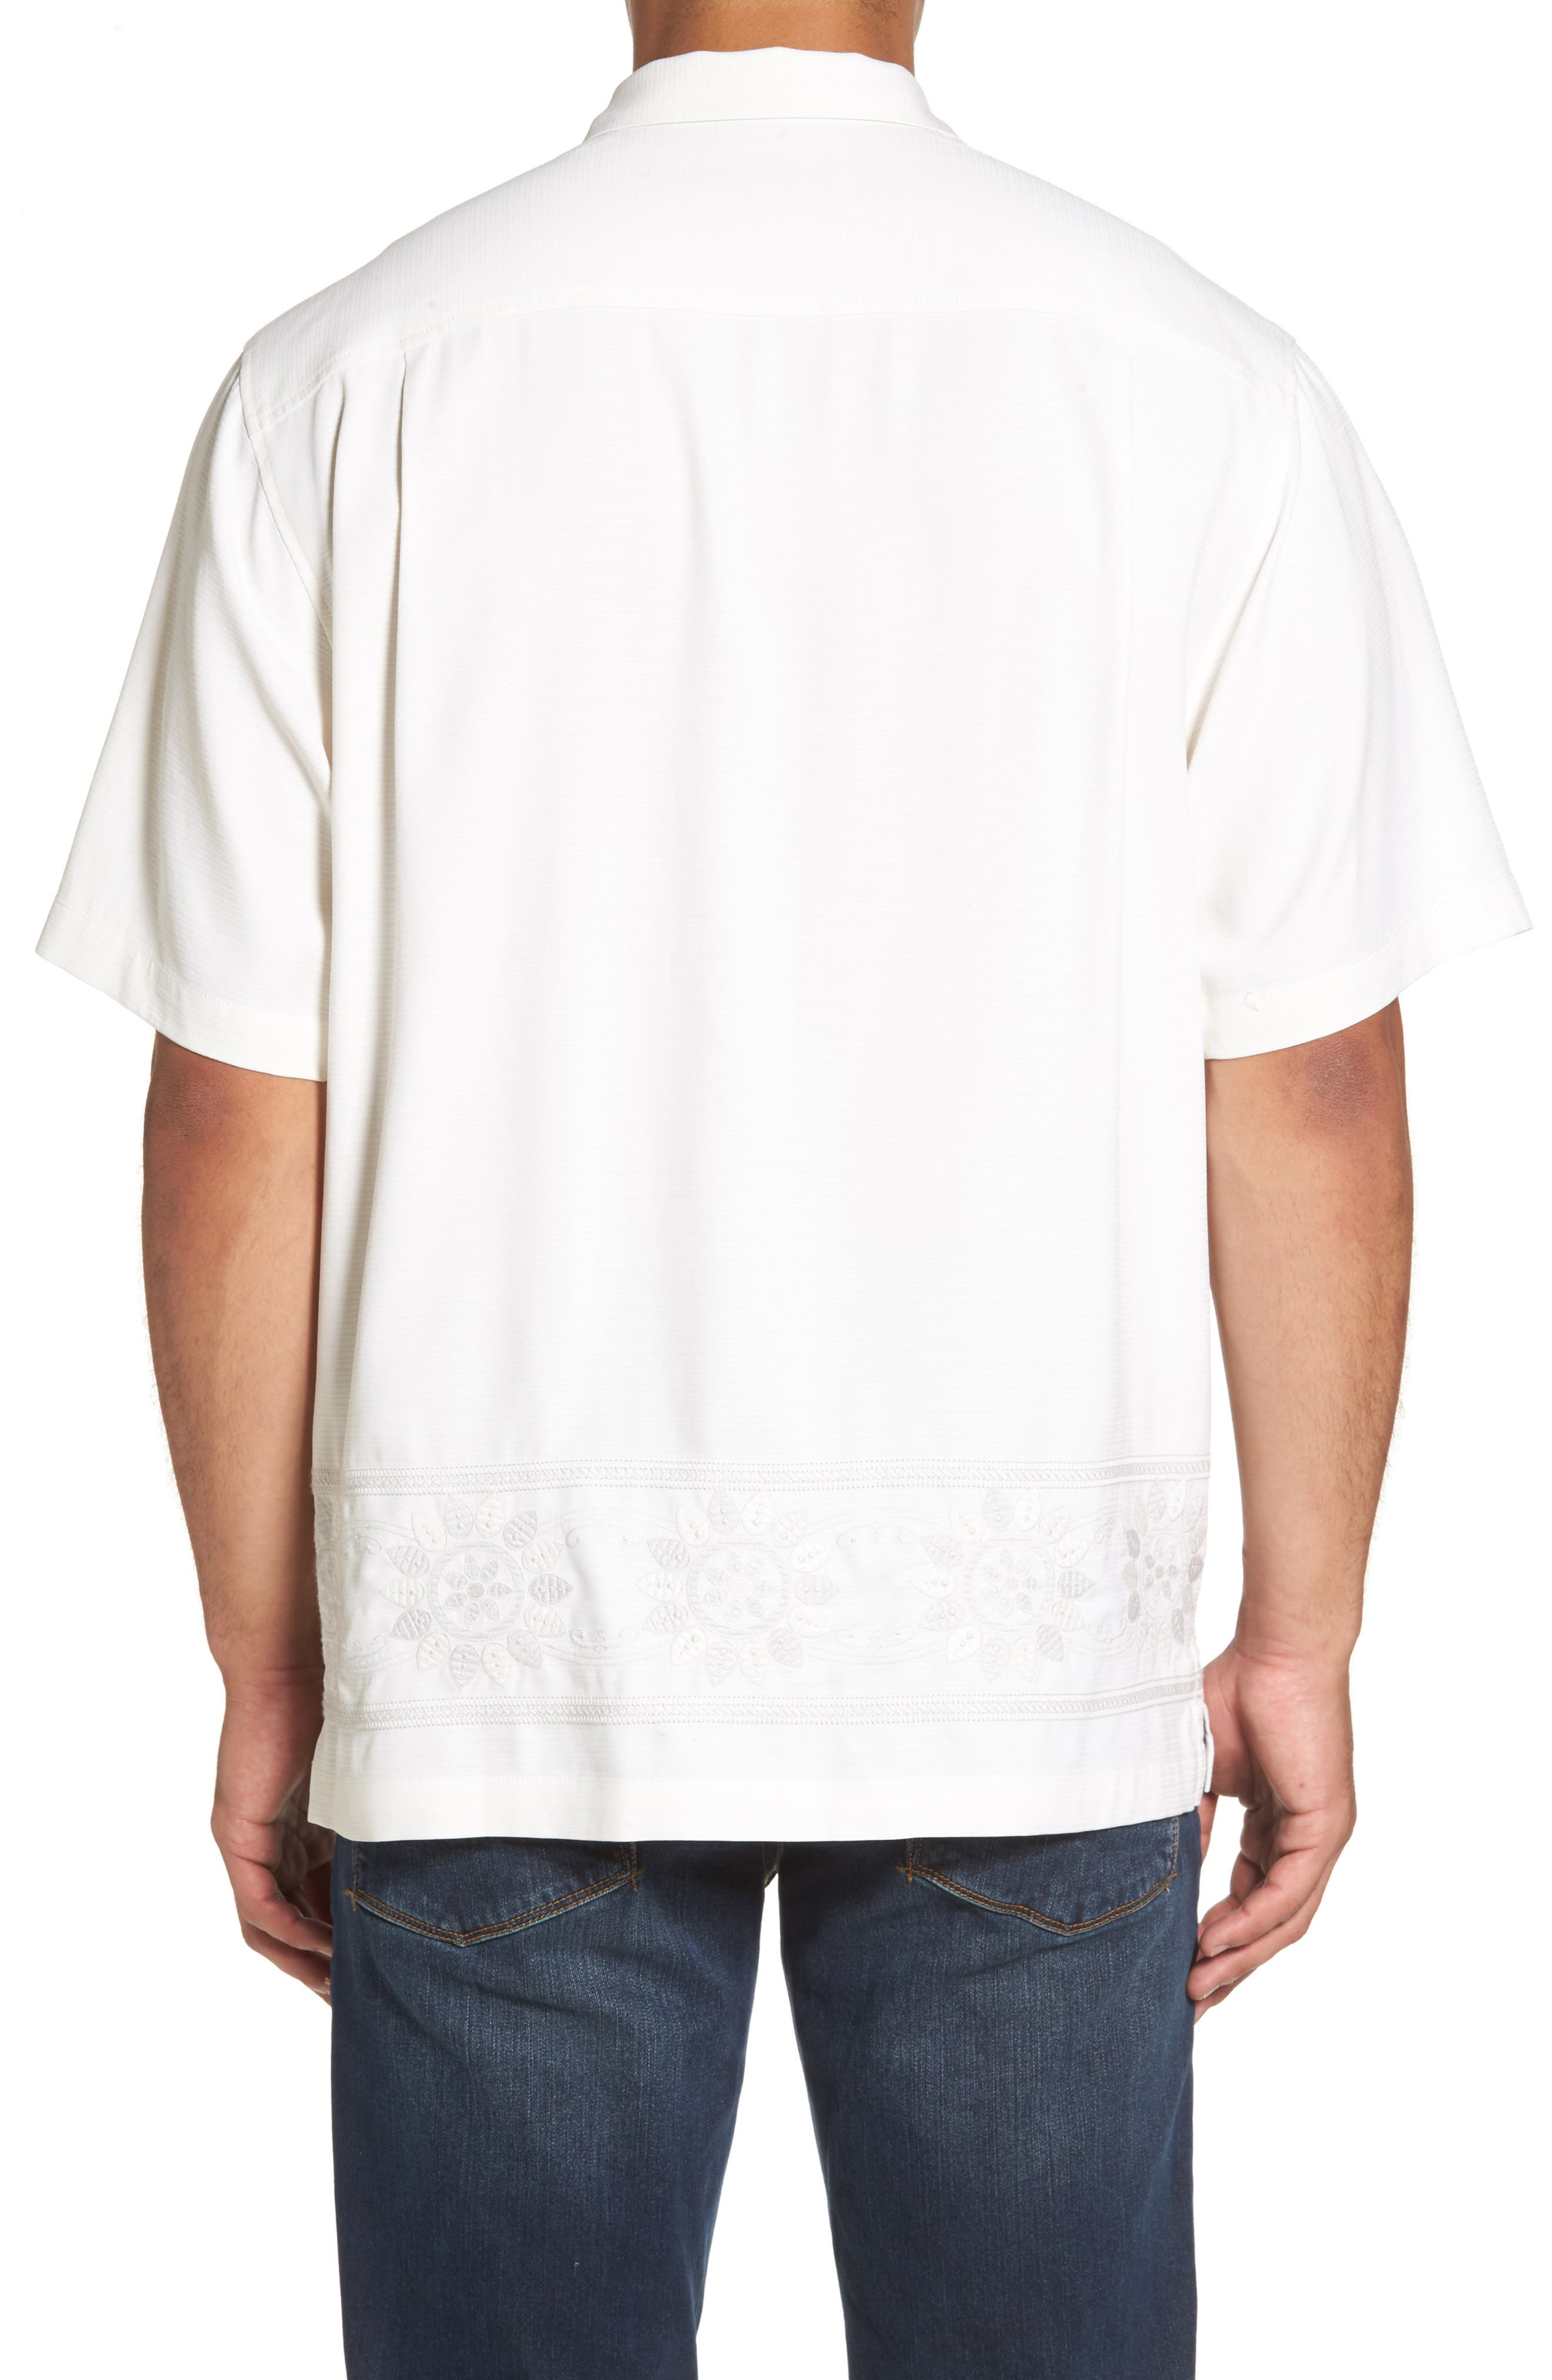 Tangier Tiles Embroidered Silk Woven Shirt,                             Alternate thumbnail 2, color,